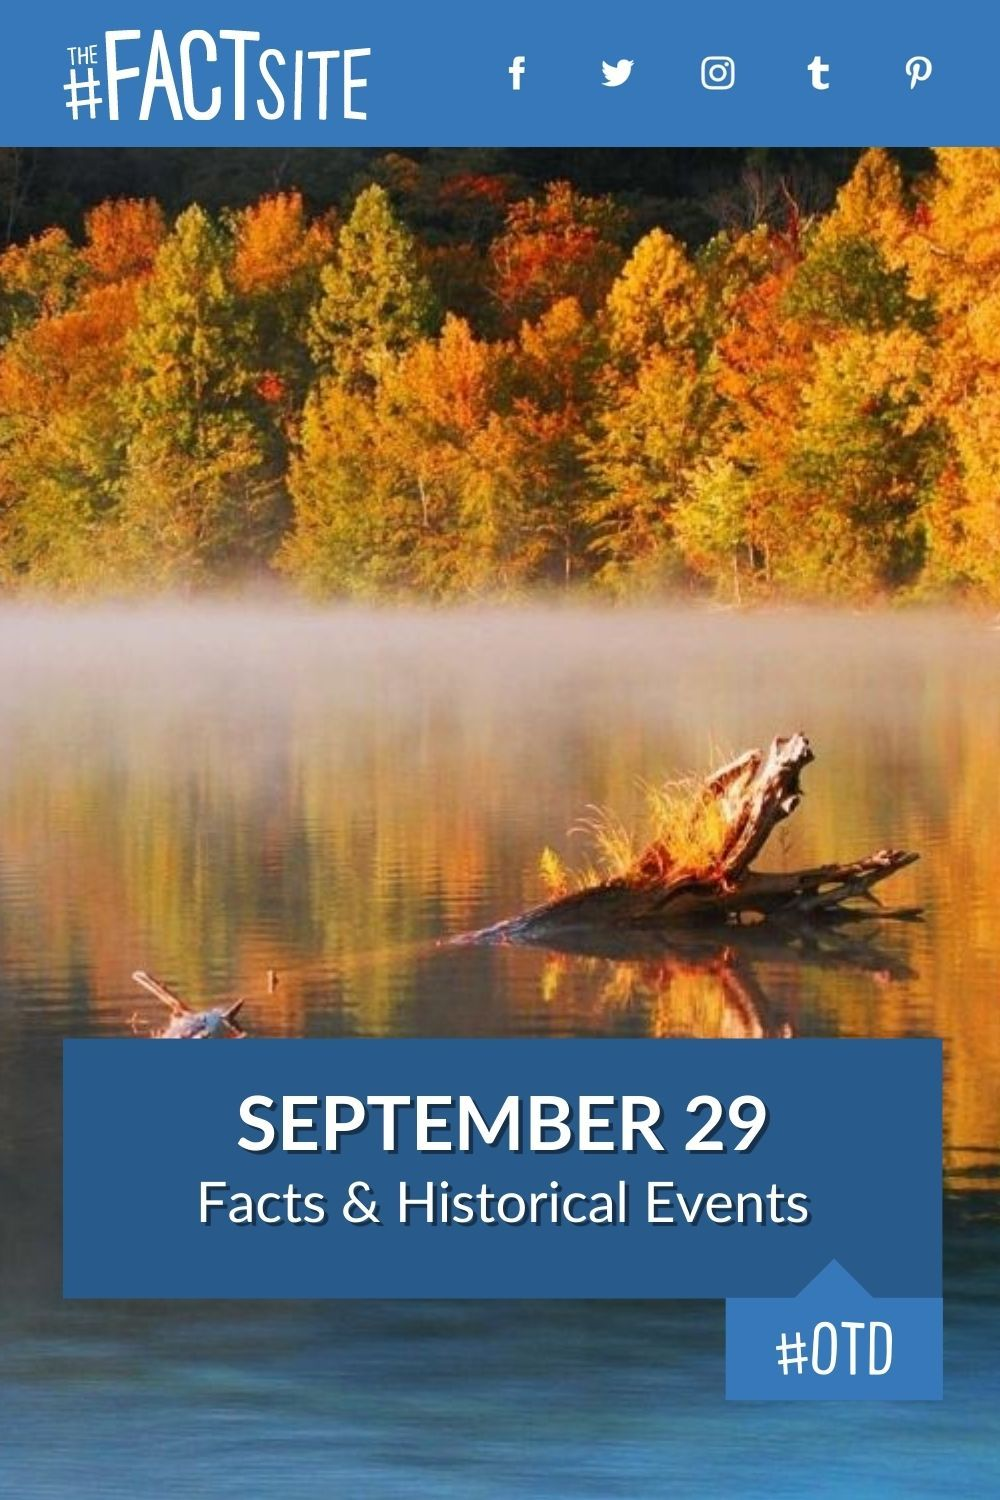 Facts & Historic Events That Happened on September 29